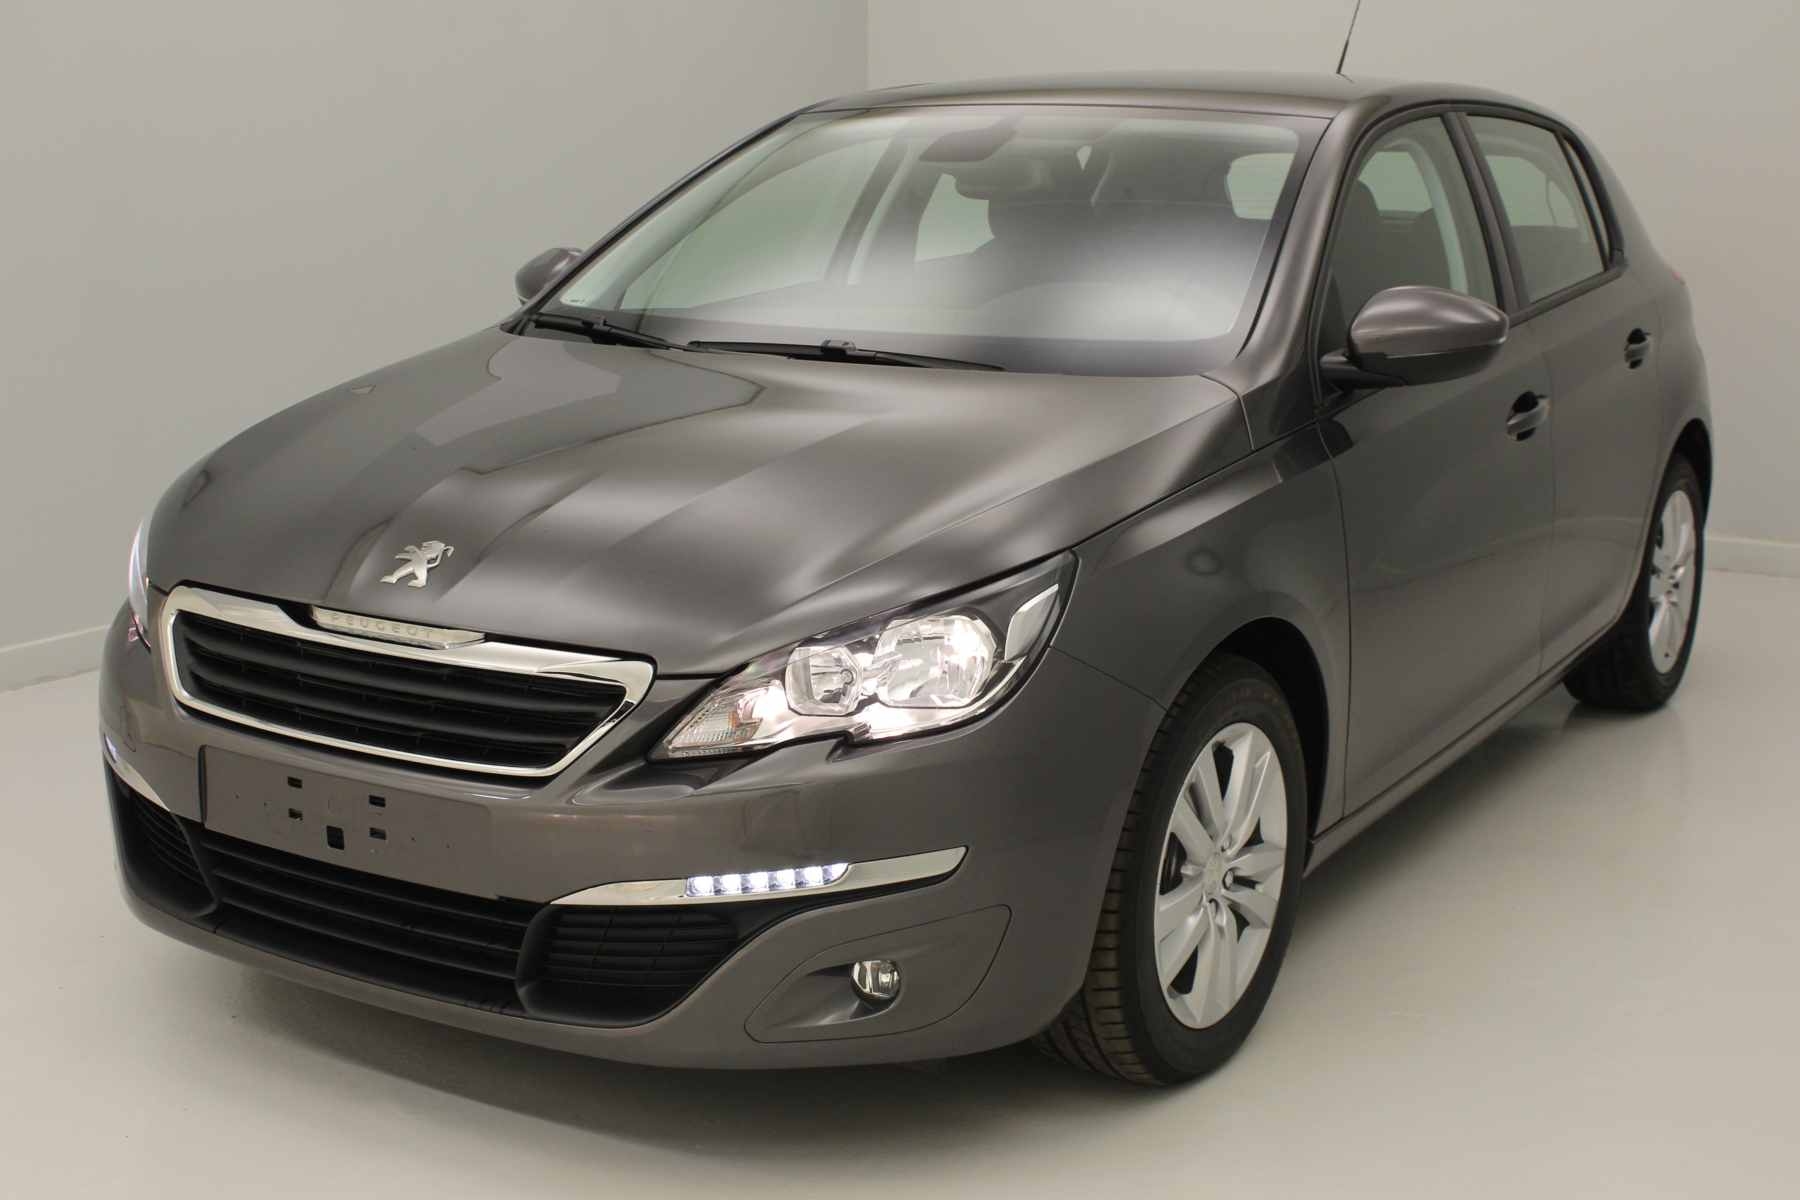 PEUGEOT 308 1.6 BlueHDi 120ch S&S EAT6 Active Gris Platinium+ Navigation avec options